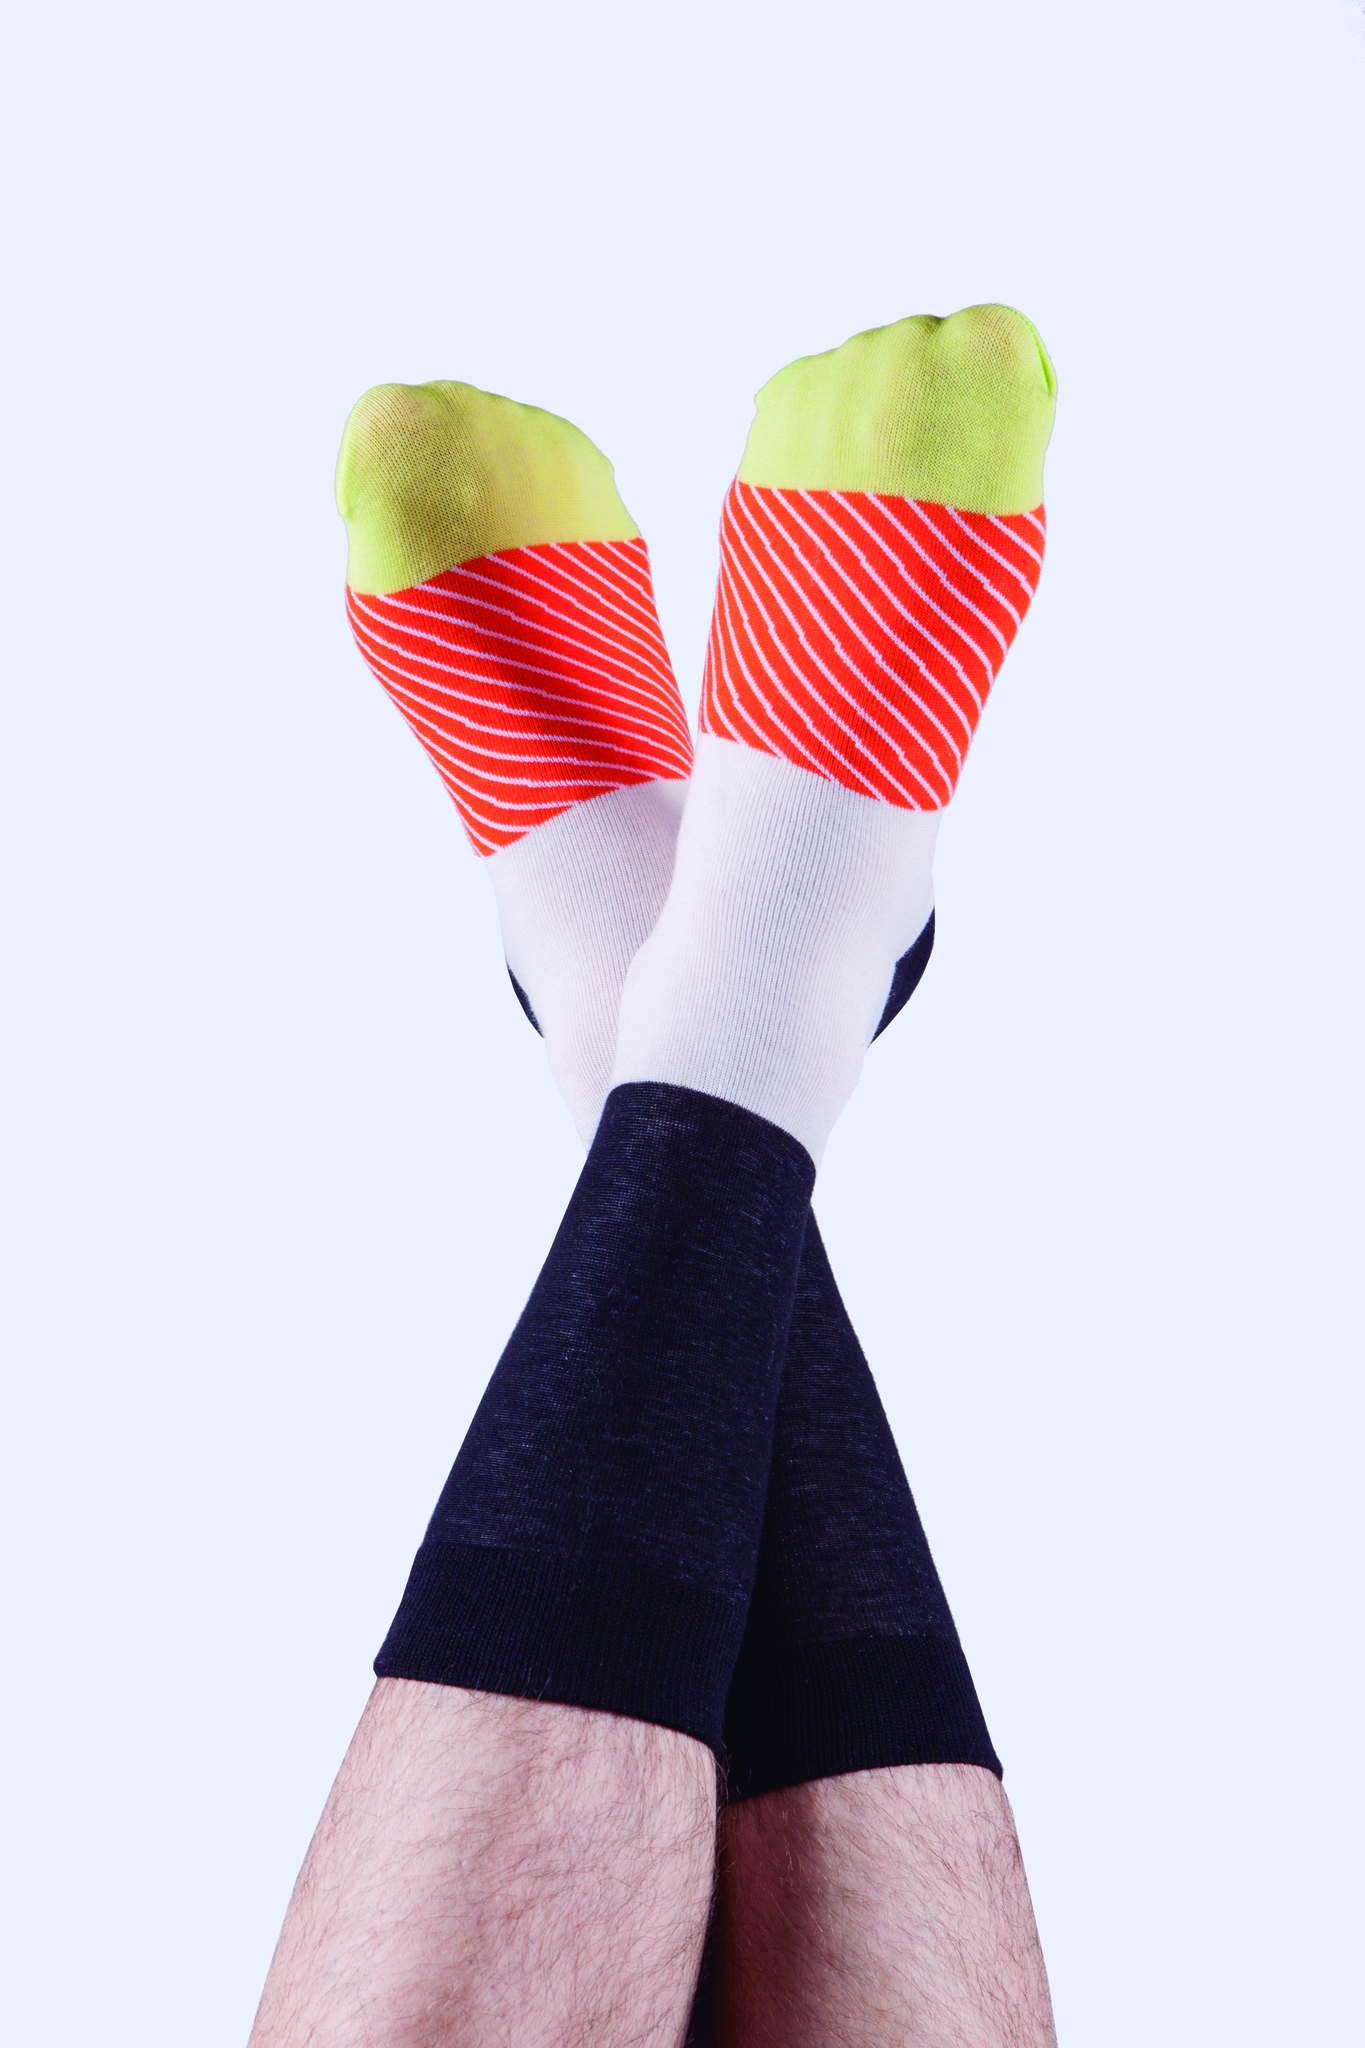 One pair of socks, one size fits all